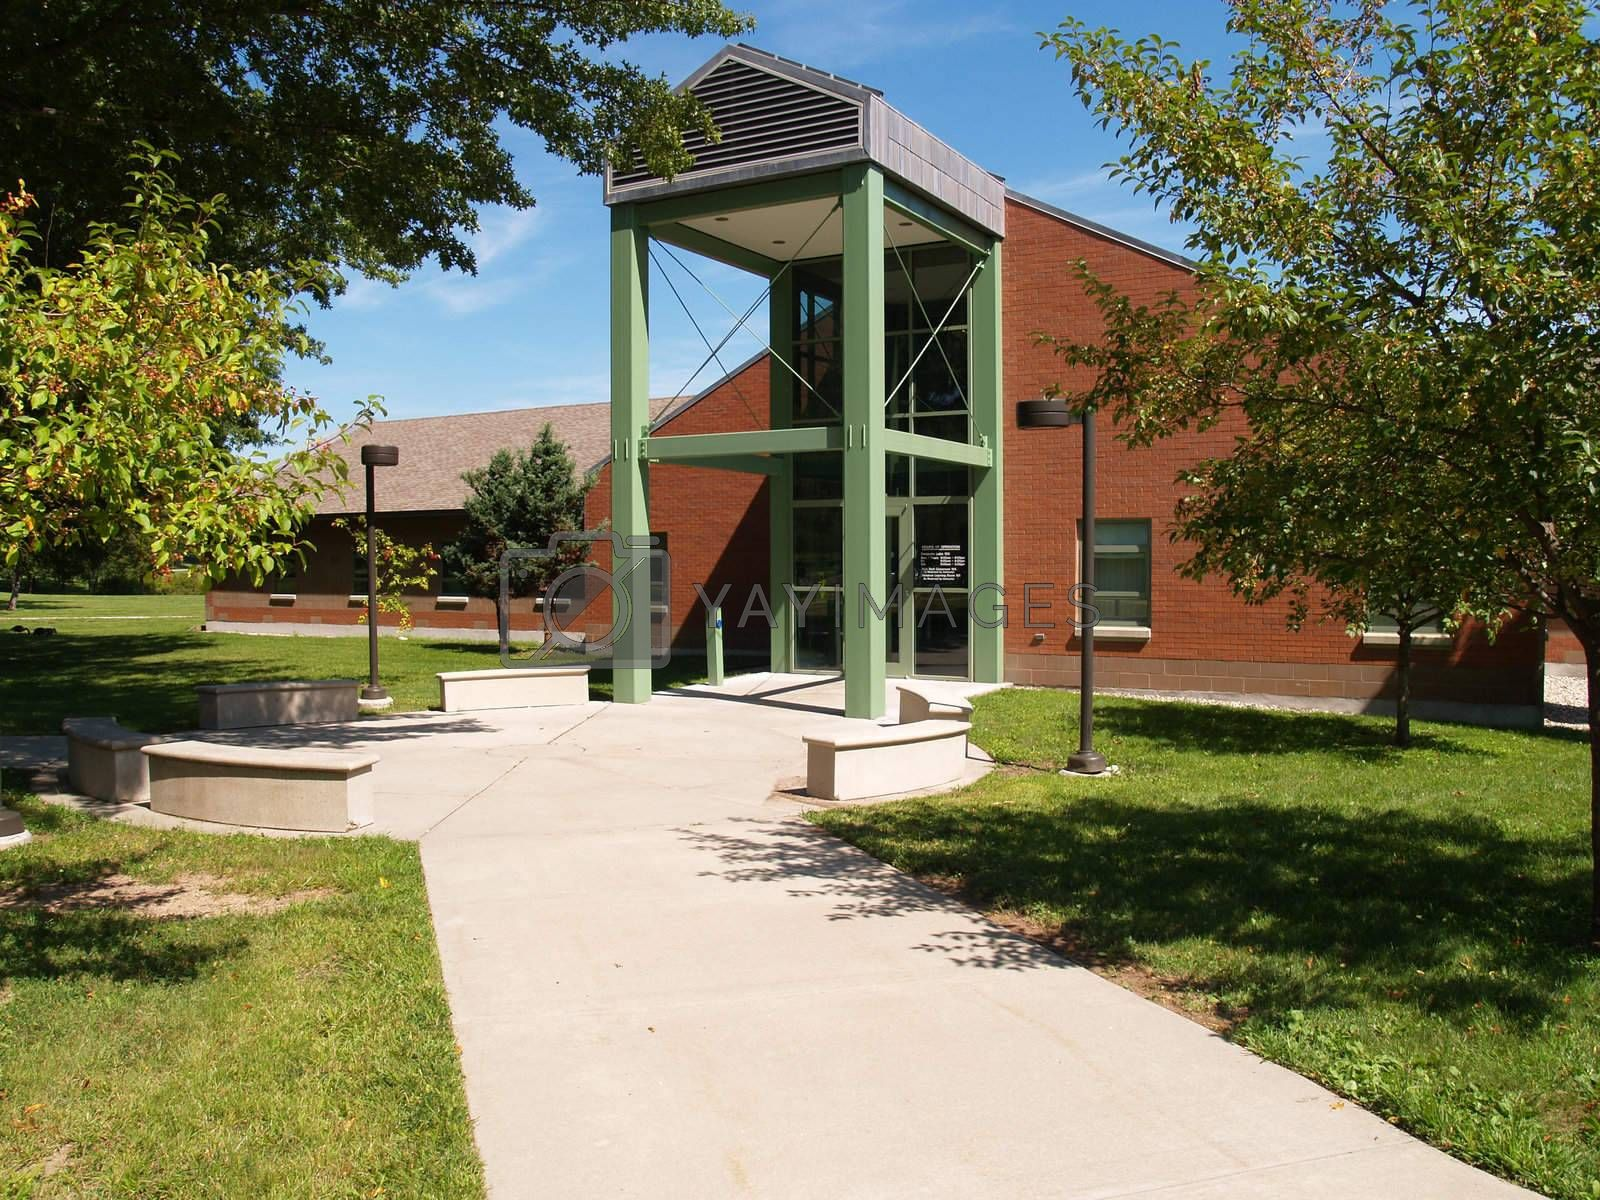 The Computer/Technical building for the University of Hartford, Greater Hartford Campus.